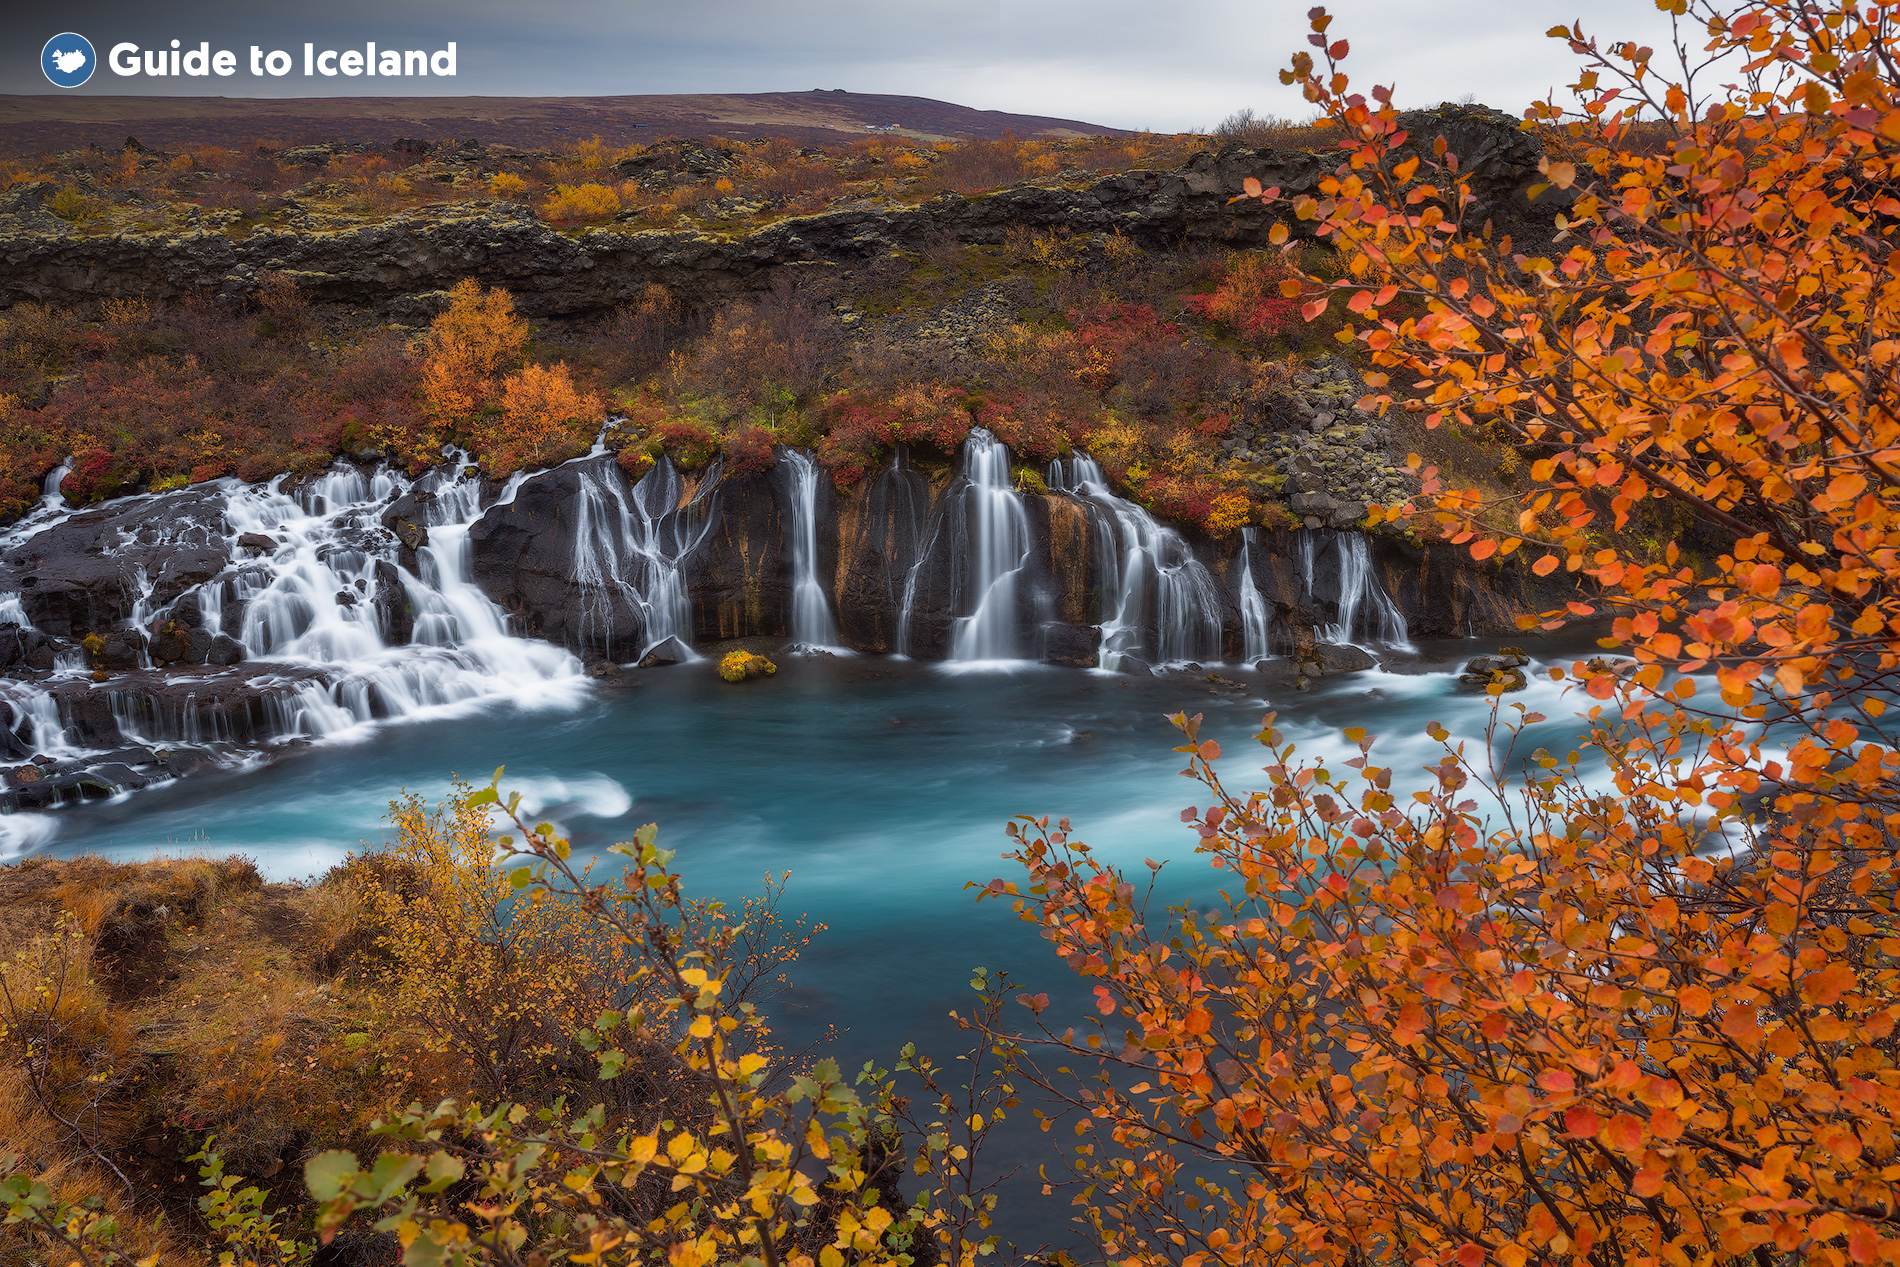 Hraunfossar waterfall is located in West Iceland